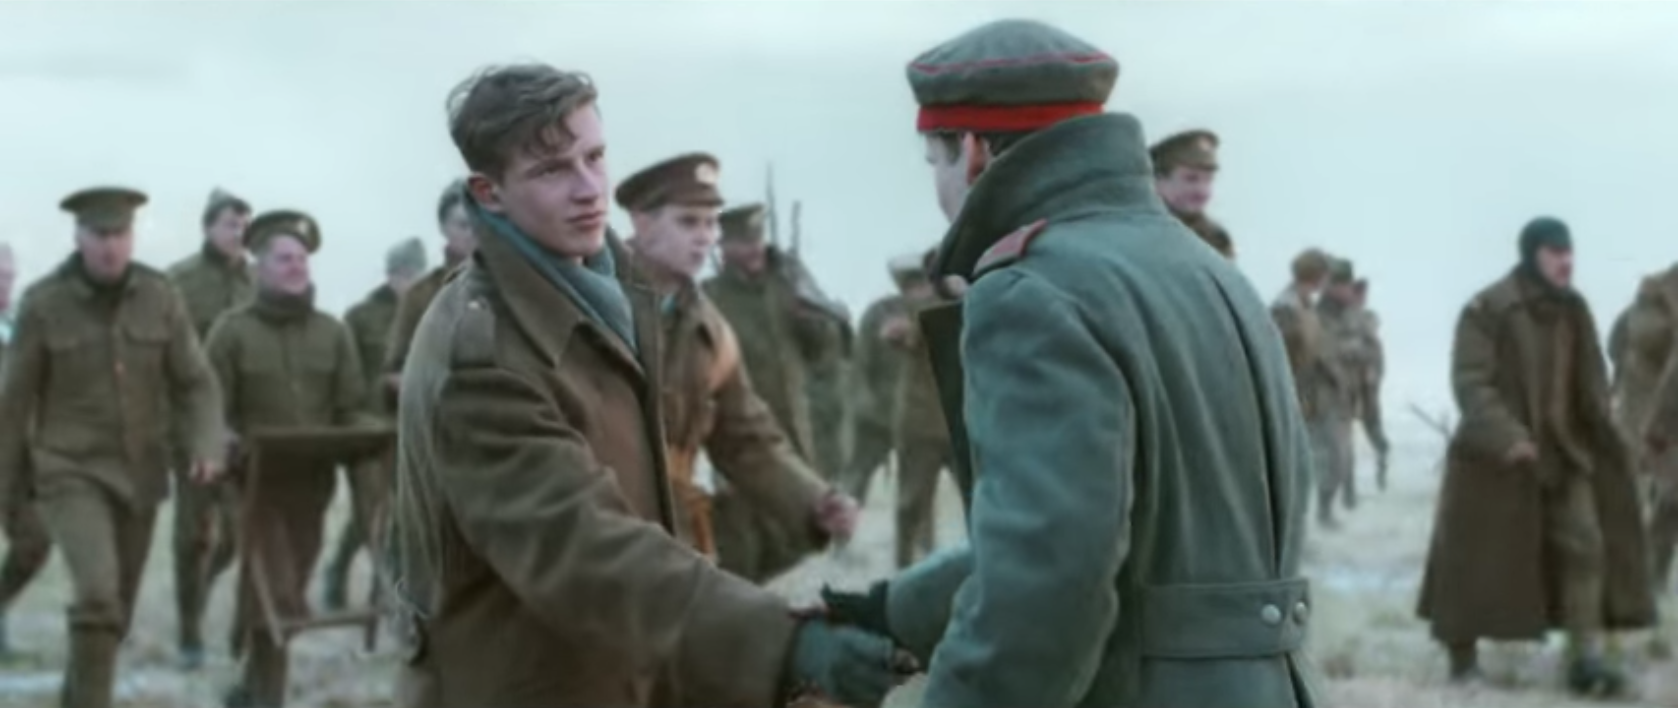 This heartbreaking antiwar commercial just won Christmas